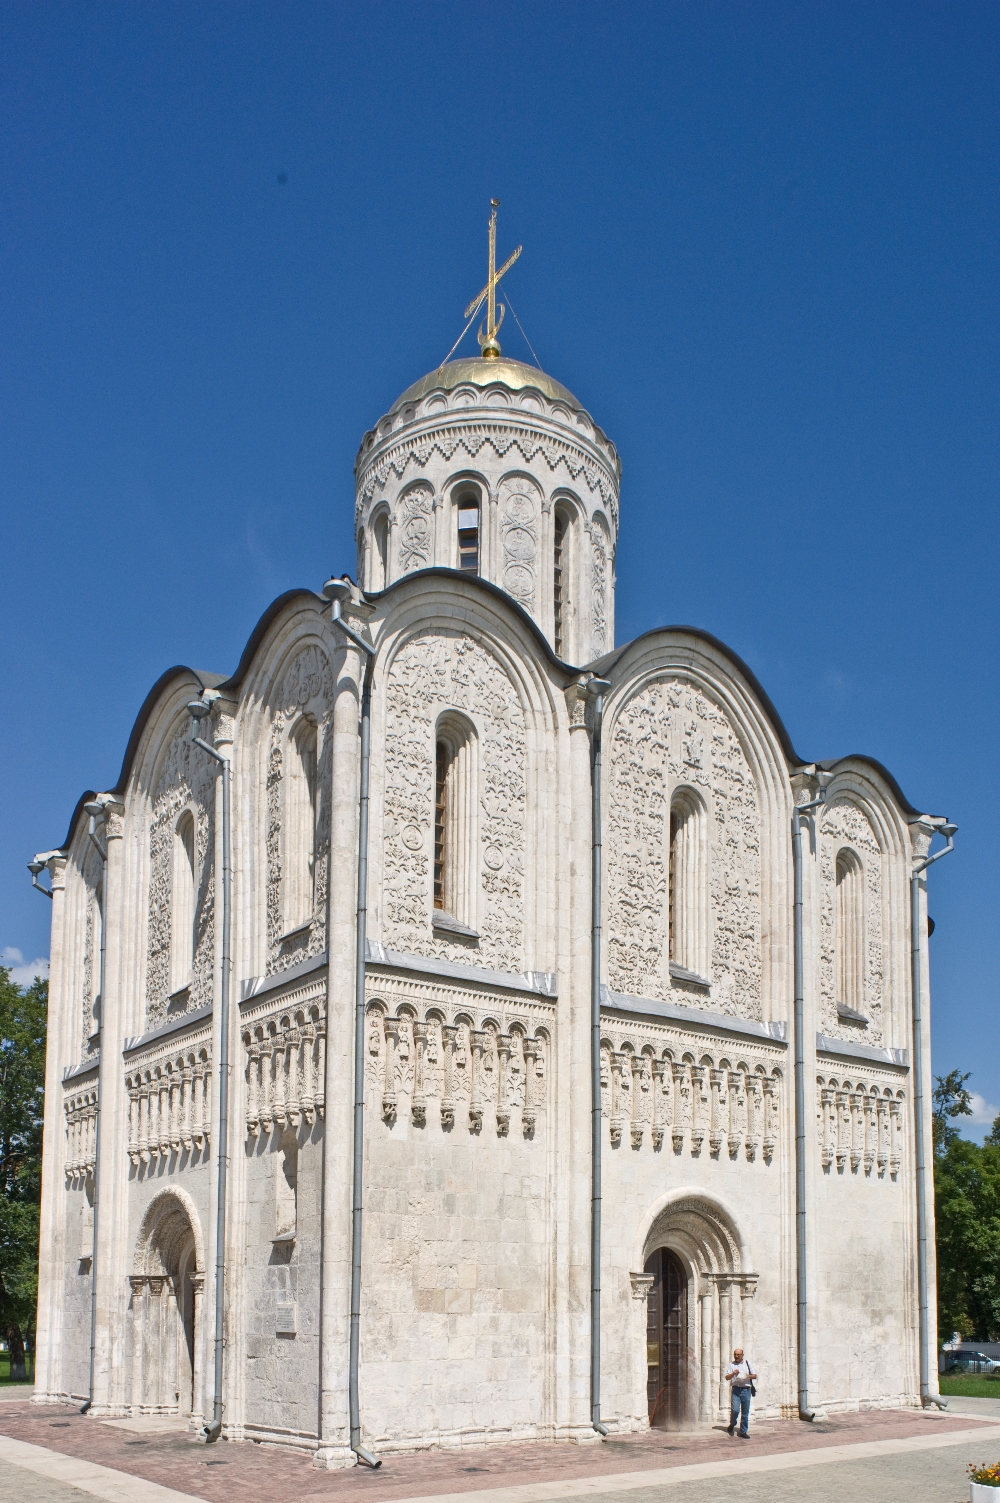 Vladimir. Cathedral of St. Dmitry, southwest view. July 18, 2009. / Photo: William Brumfield